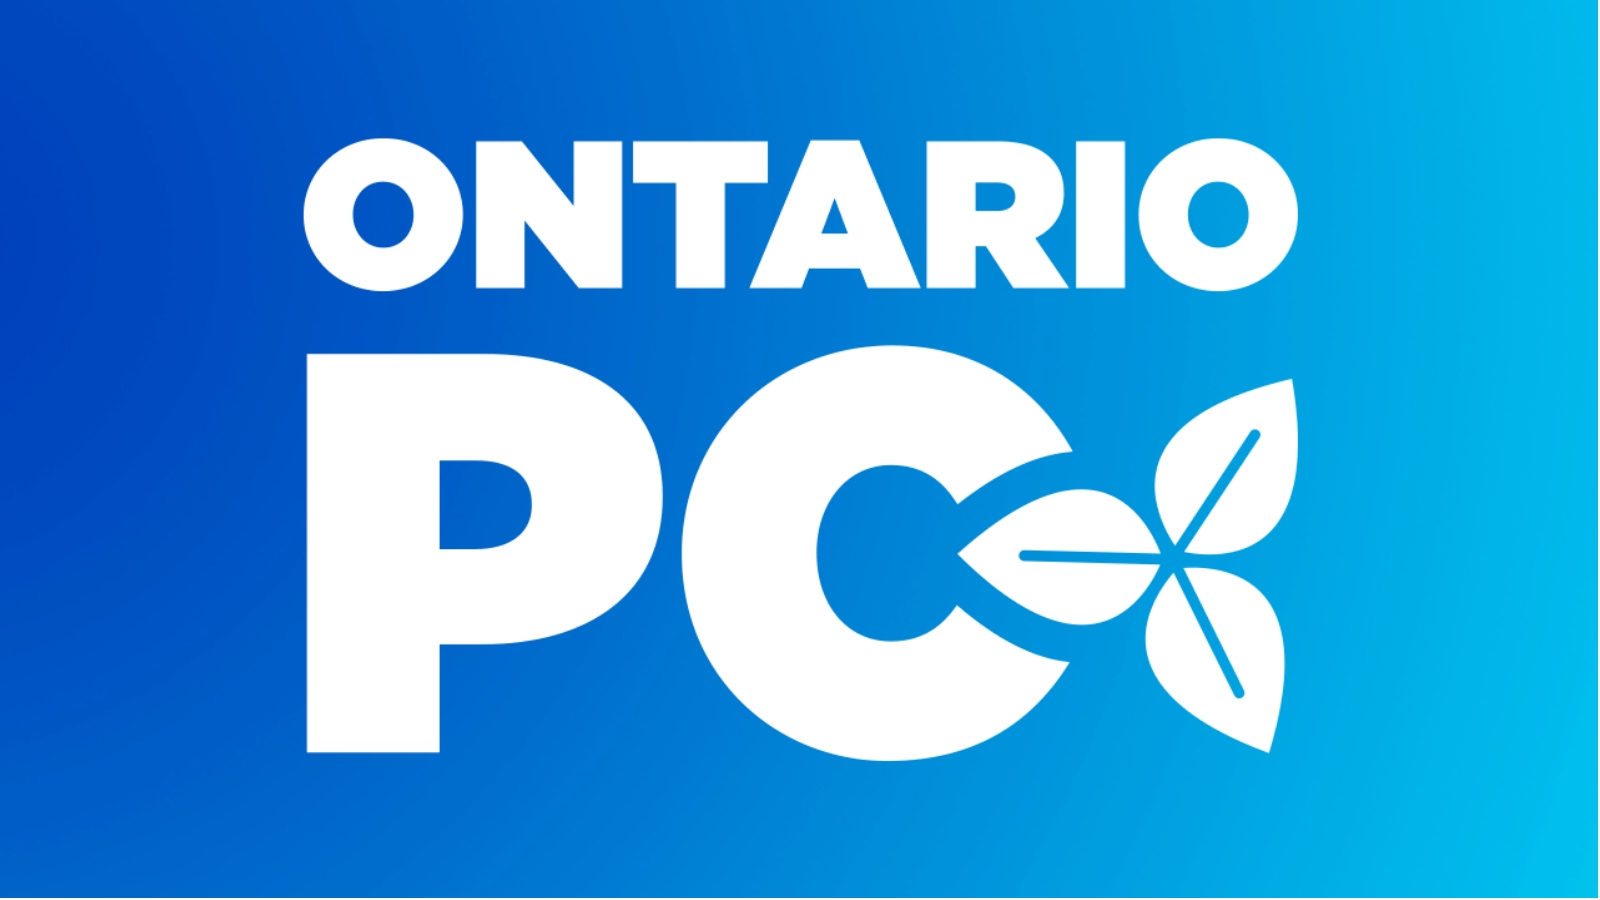 Statement by Ontario PC Interim Leader Jim Wilson Recognizing Jewish Heritage Month